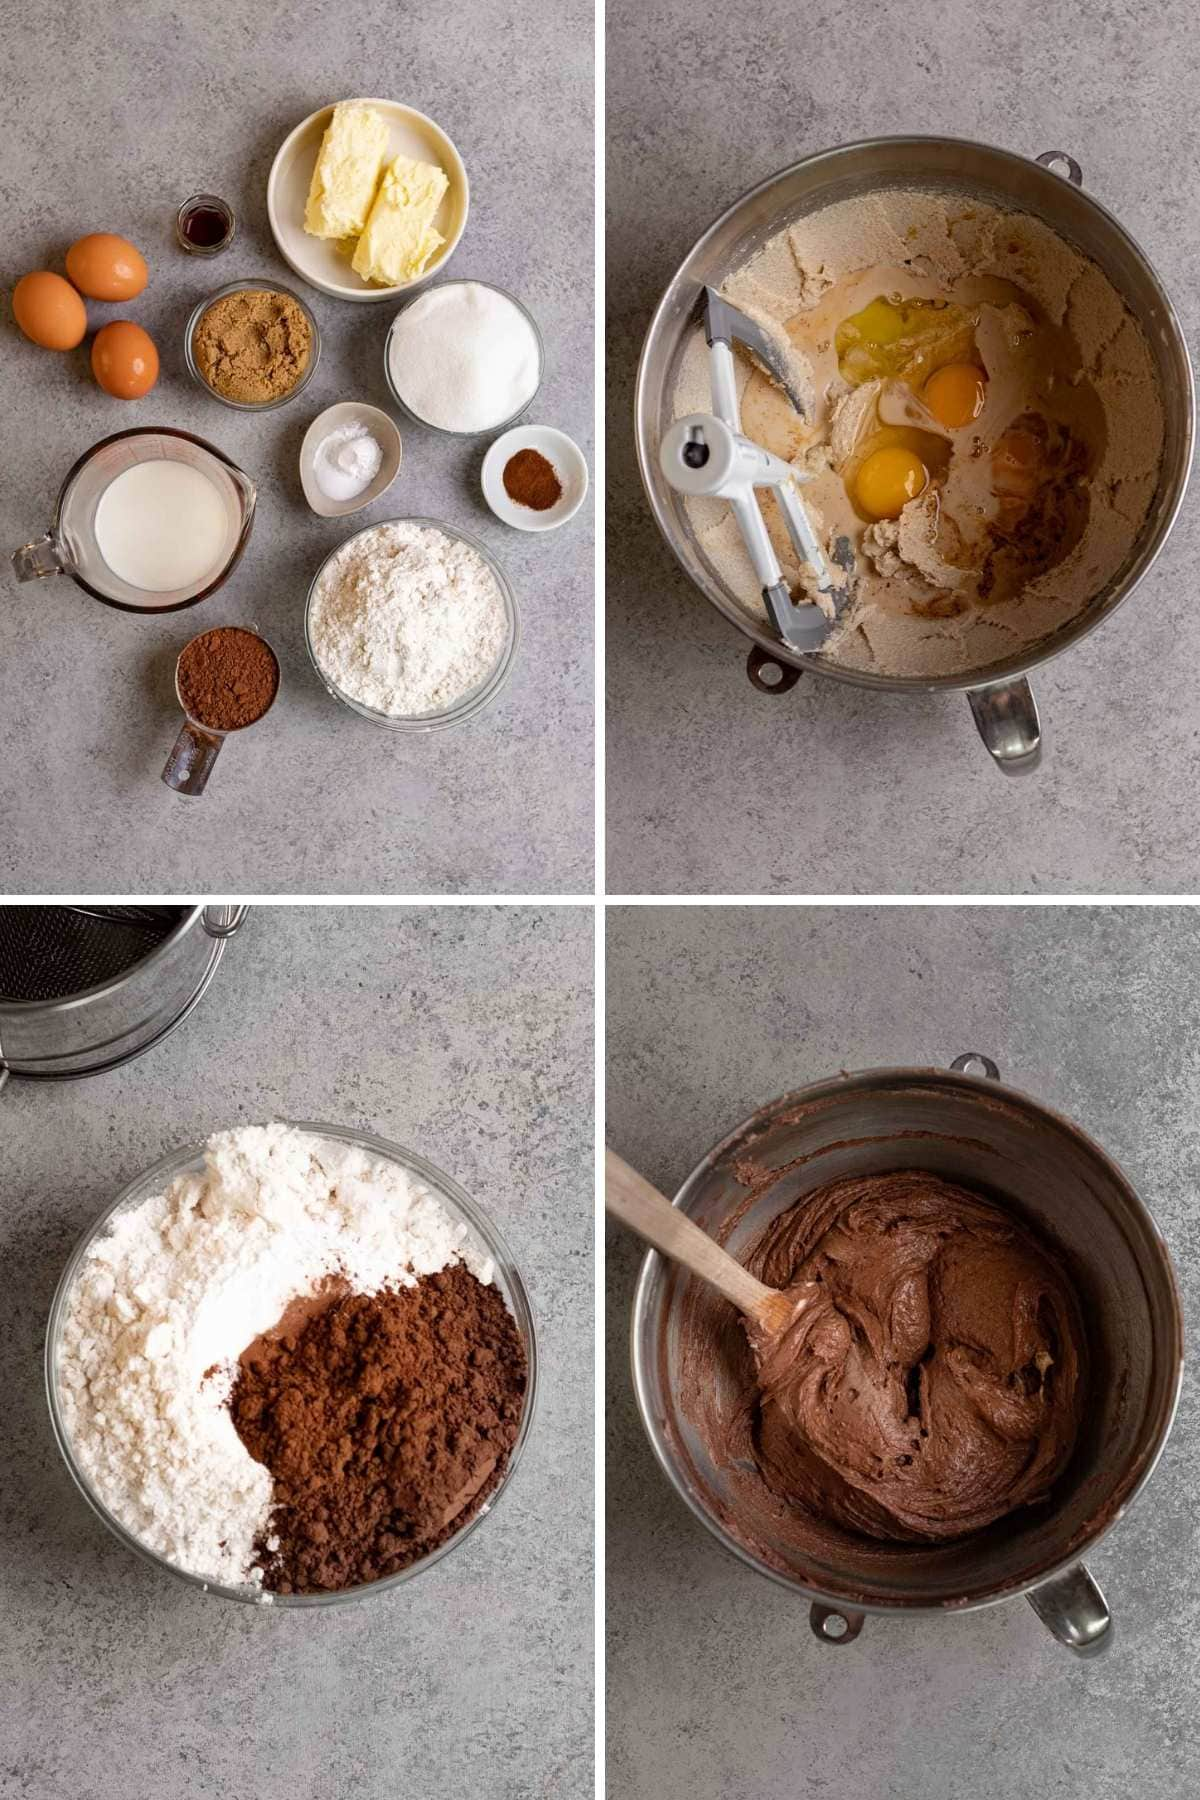 Collage of prep steps for Wet ingredients in mixing bowl with paddle attachment for Chocolate Pound Cake